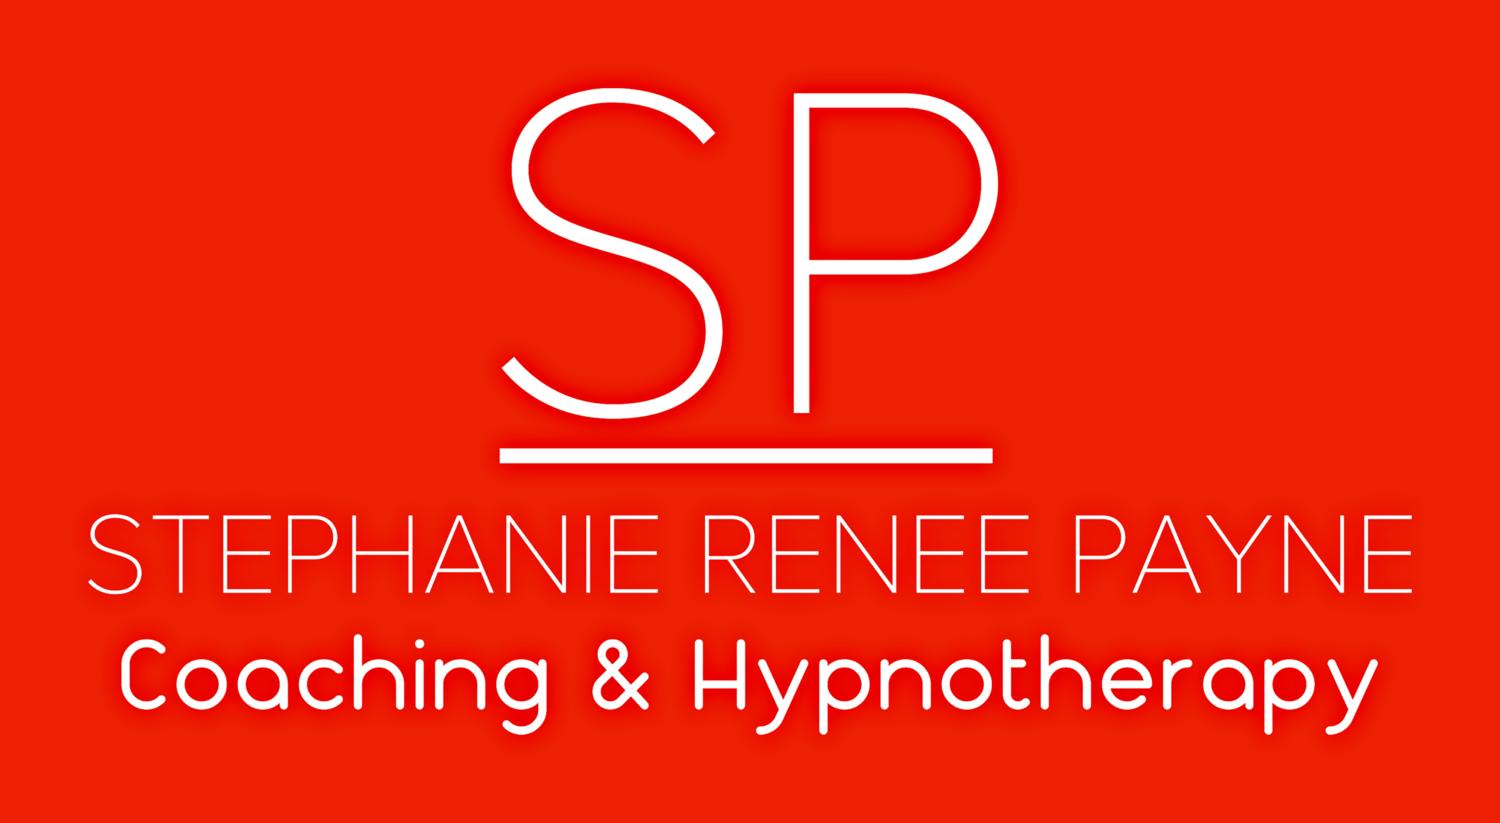 Stephanie Renee Payne